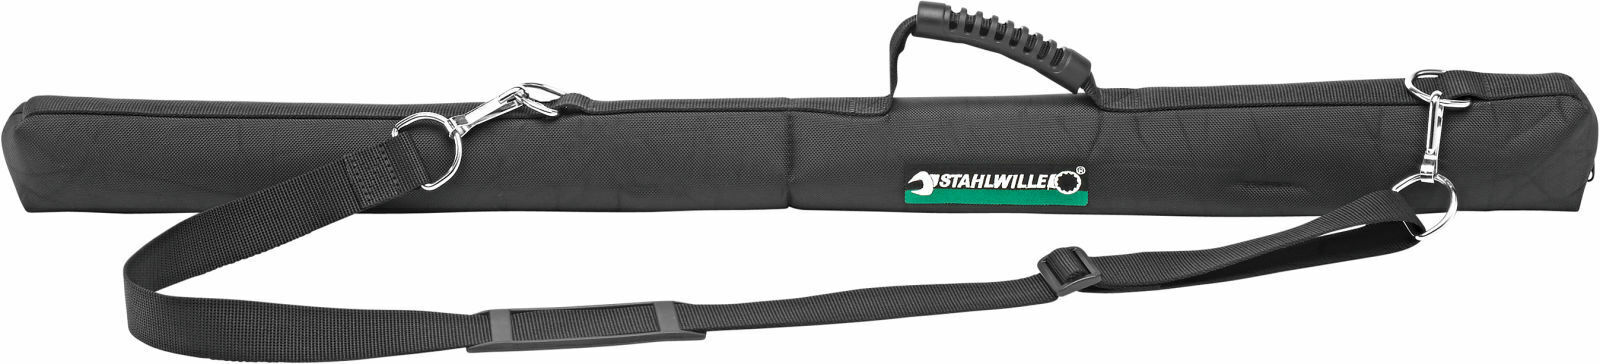 Stahlwille BAG FOR TORQUE WRENCH 81231103